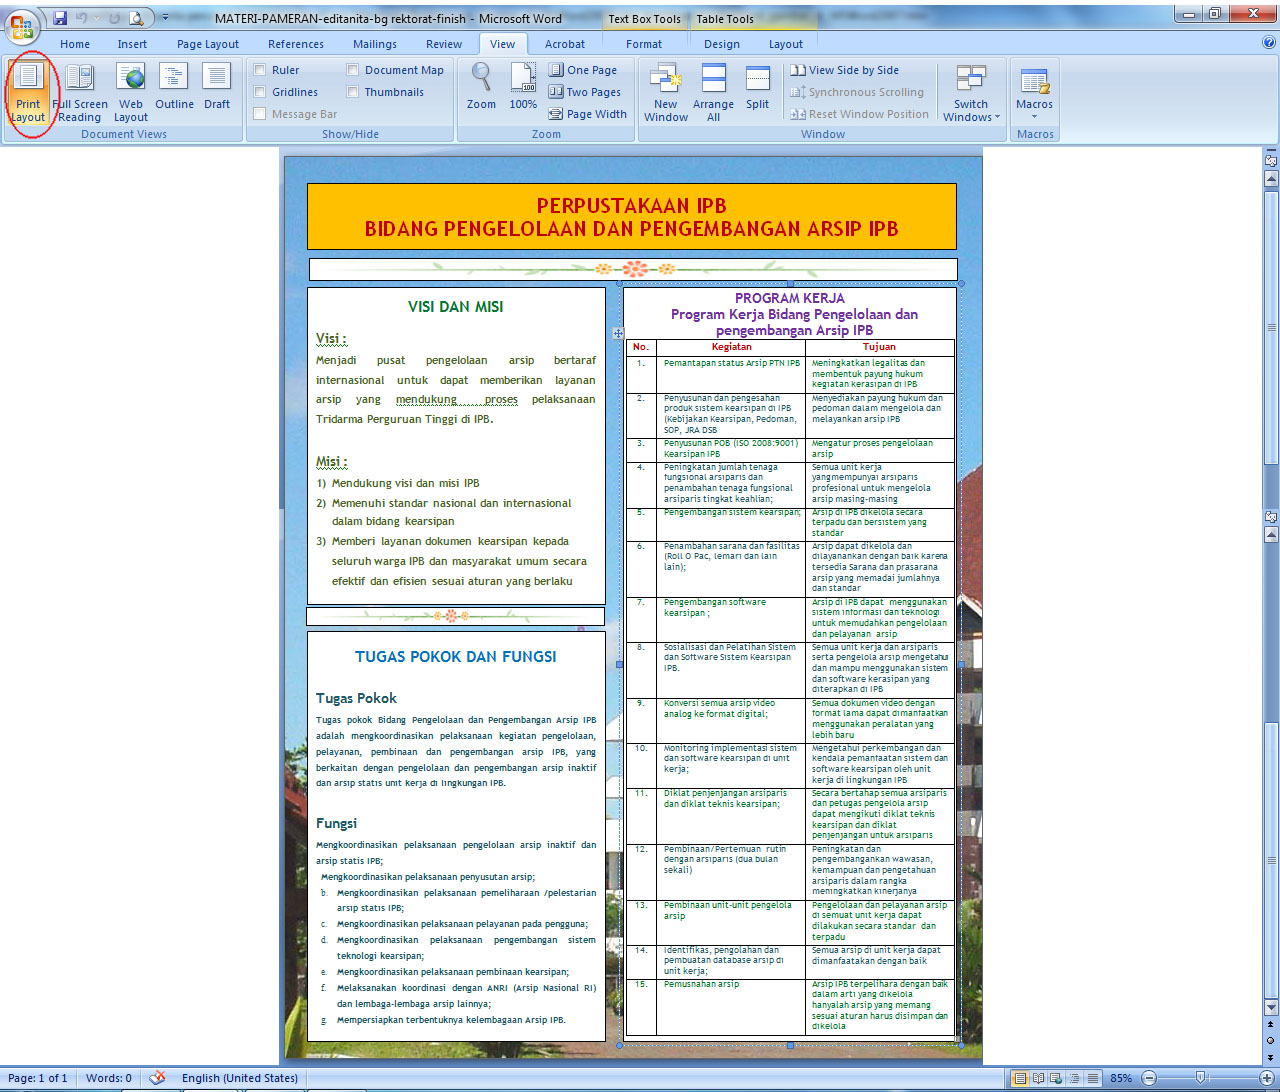 cara_membuat_background_gambar_di_MSWord2007_print_layout